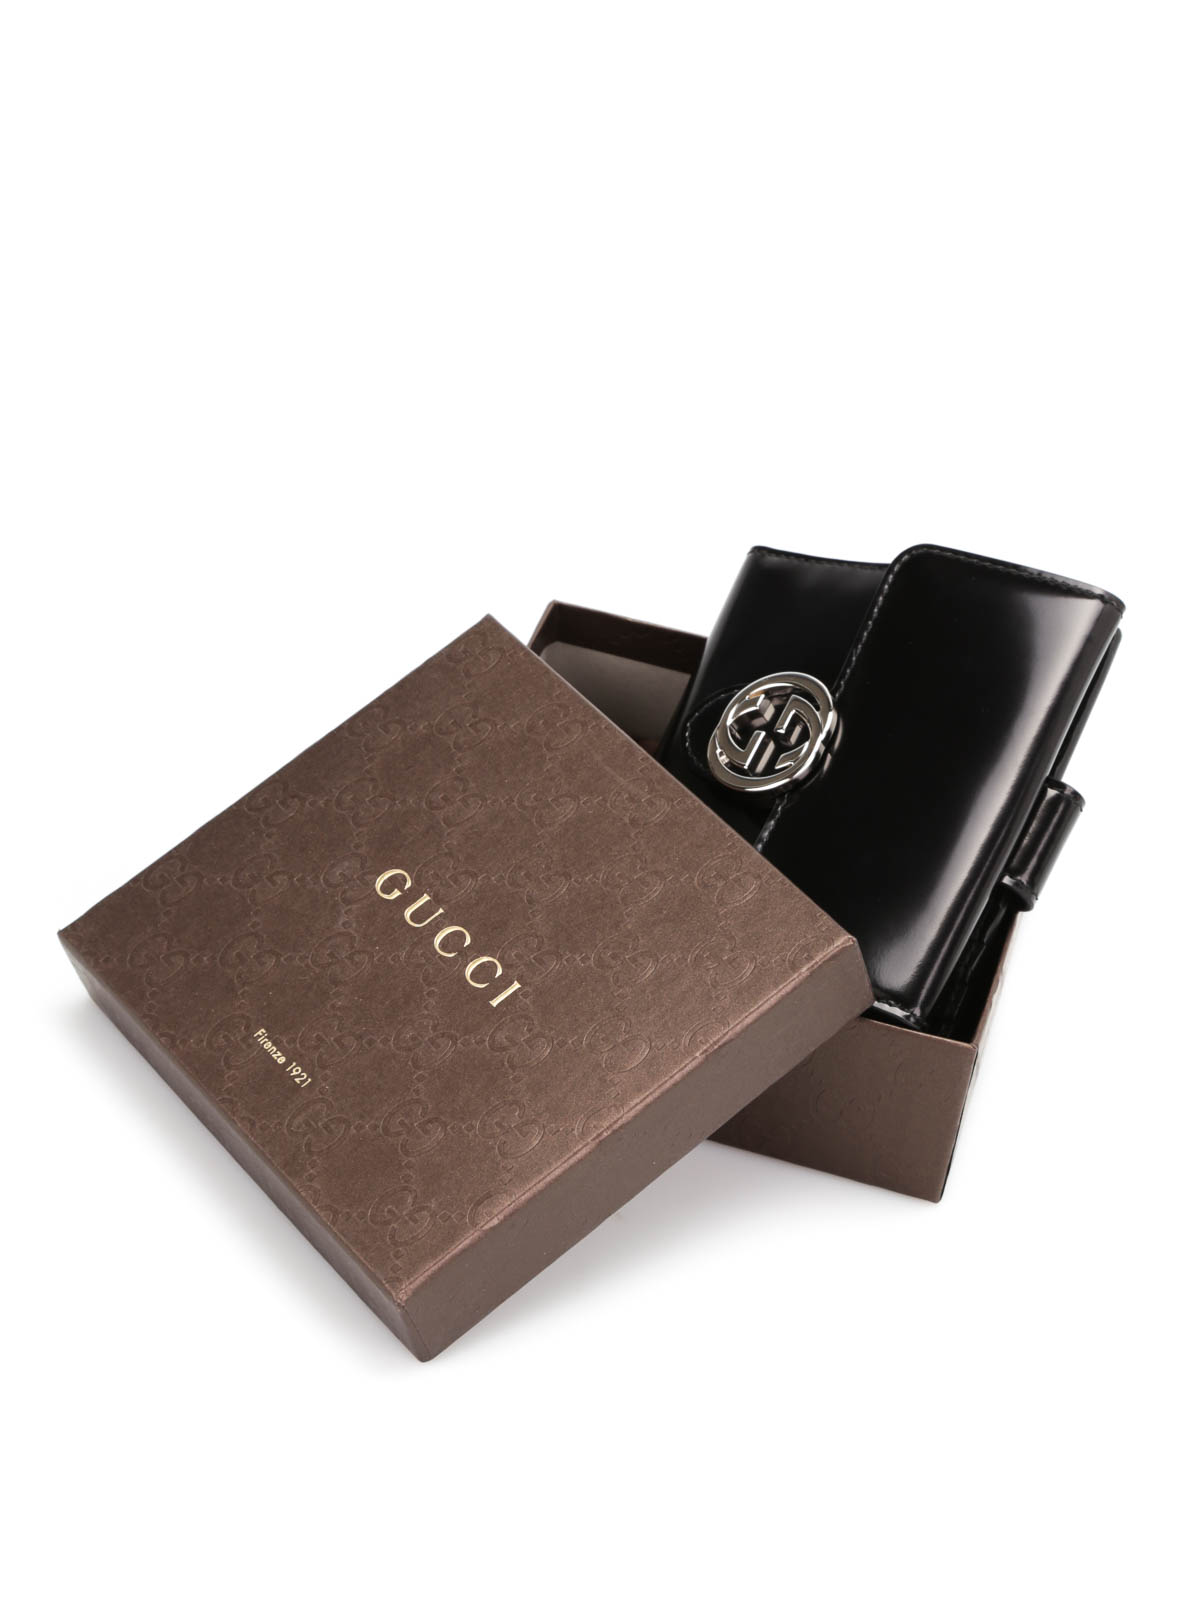 8fe77f643108 iKRIX GUCCI  Gucci icon french flap wallet. GUCCI  wallets   purses ...